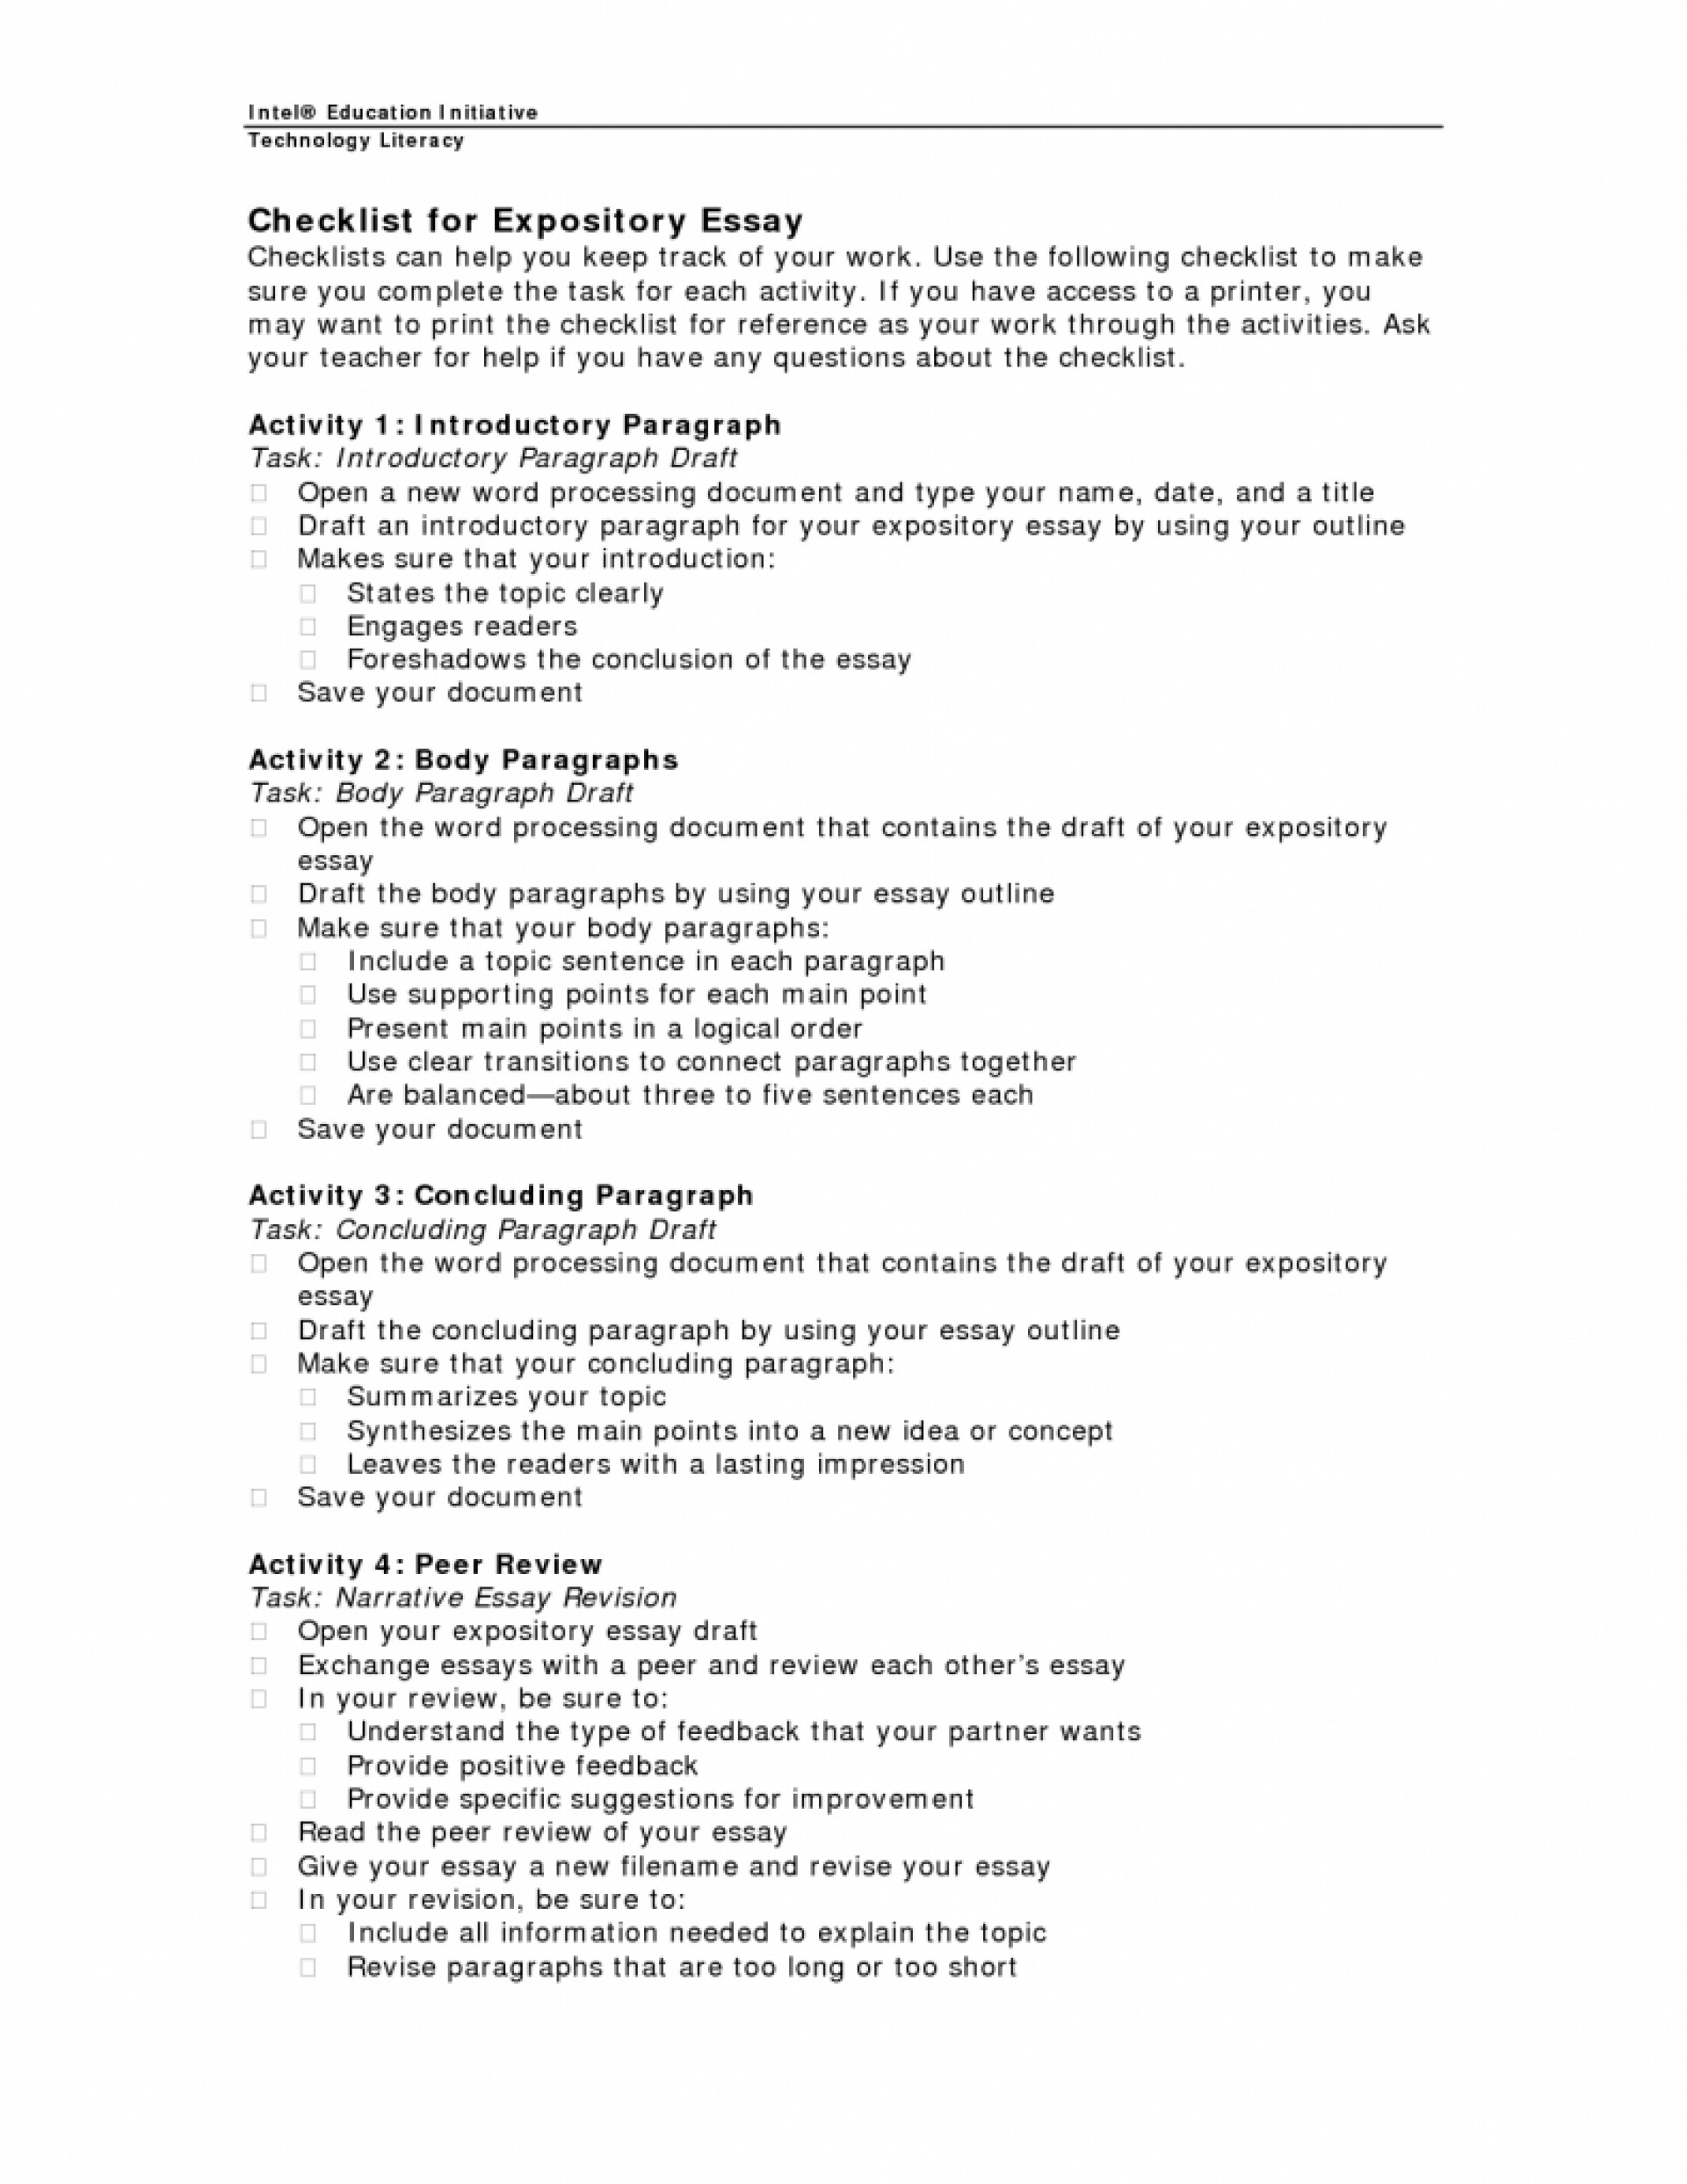 023 Expository Essay Checklist 791x1024 What Is An Magnificent Powerpoint Are Some Topics Gcu 1920